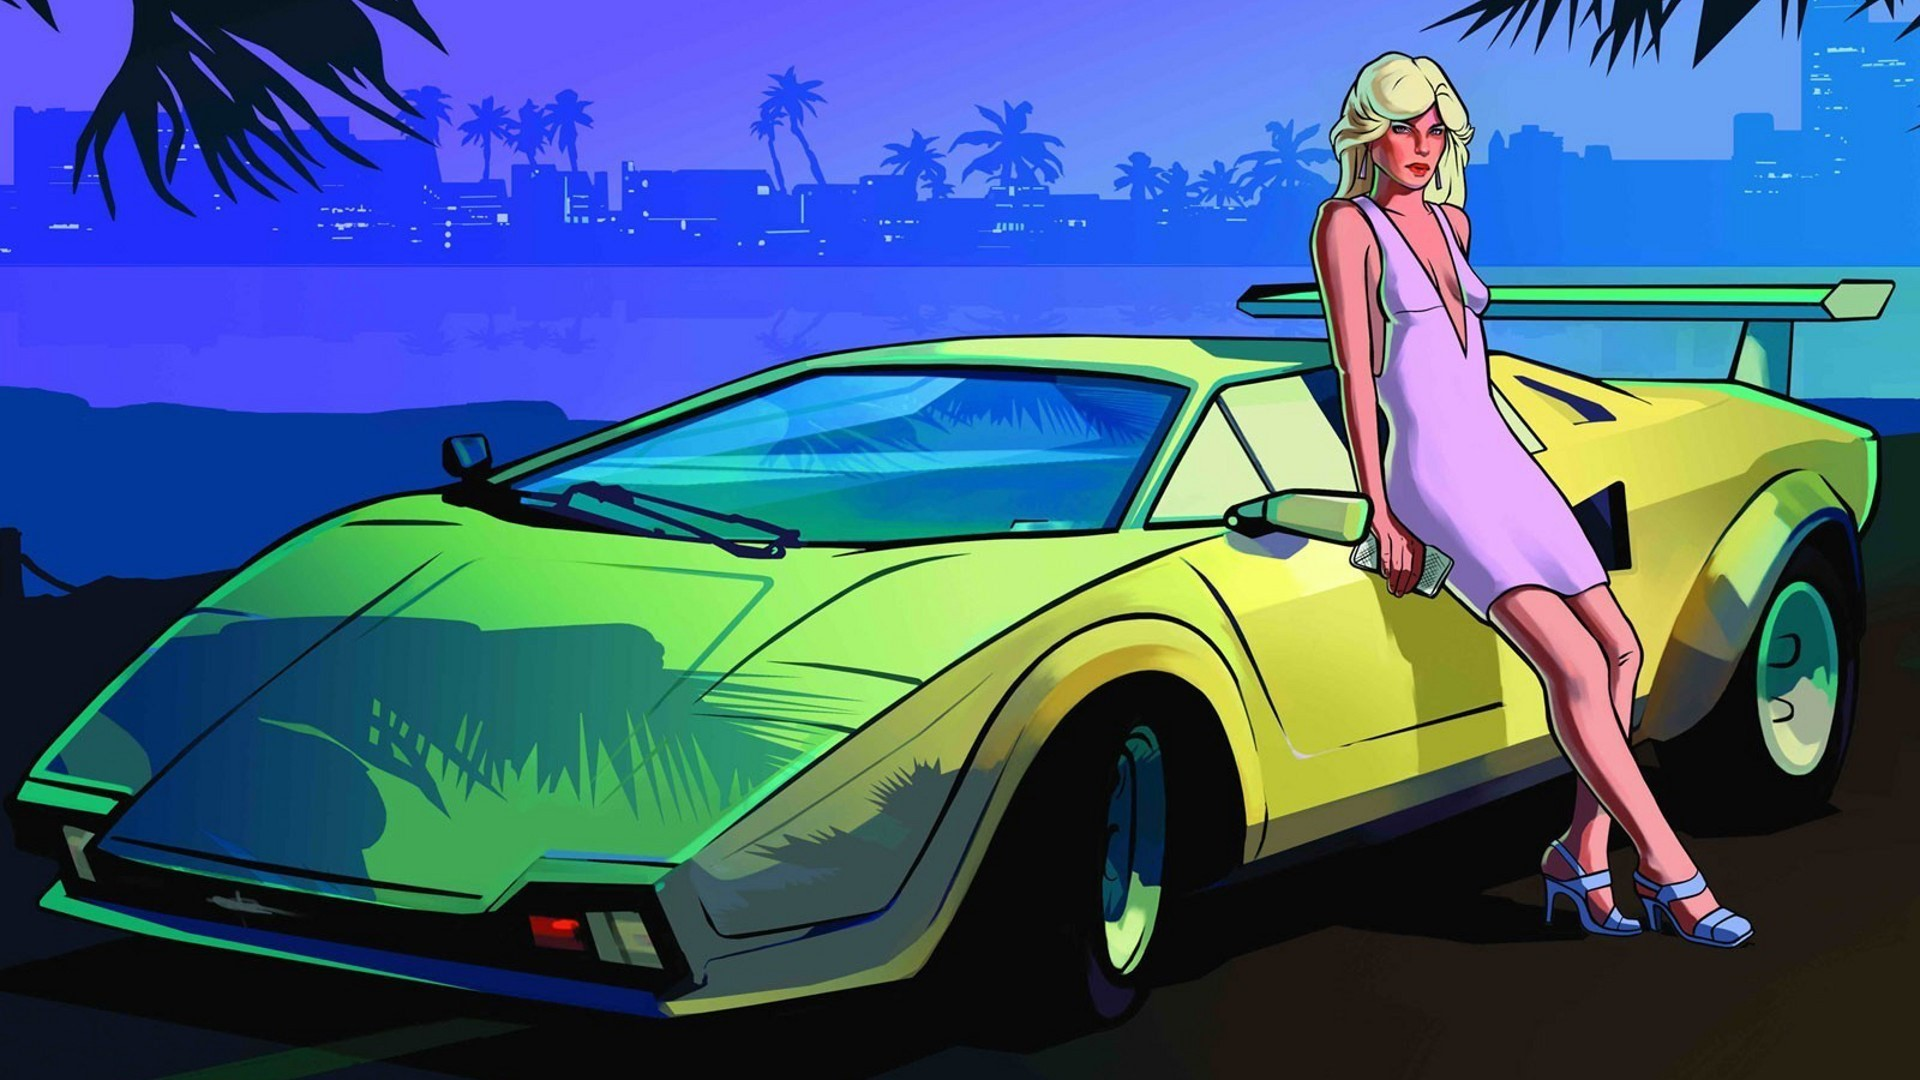 1920x1080 Ogden Young - free desktop wallpaper downloads grand theft auto vice city -   px